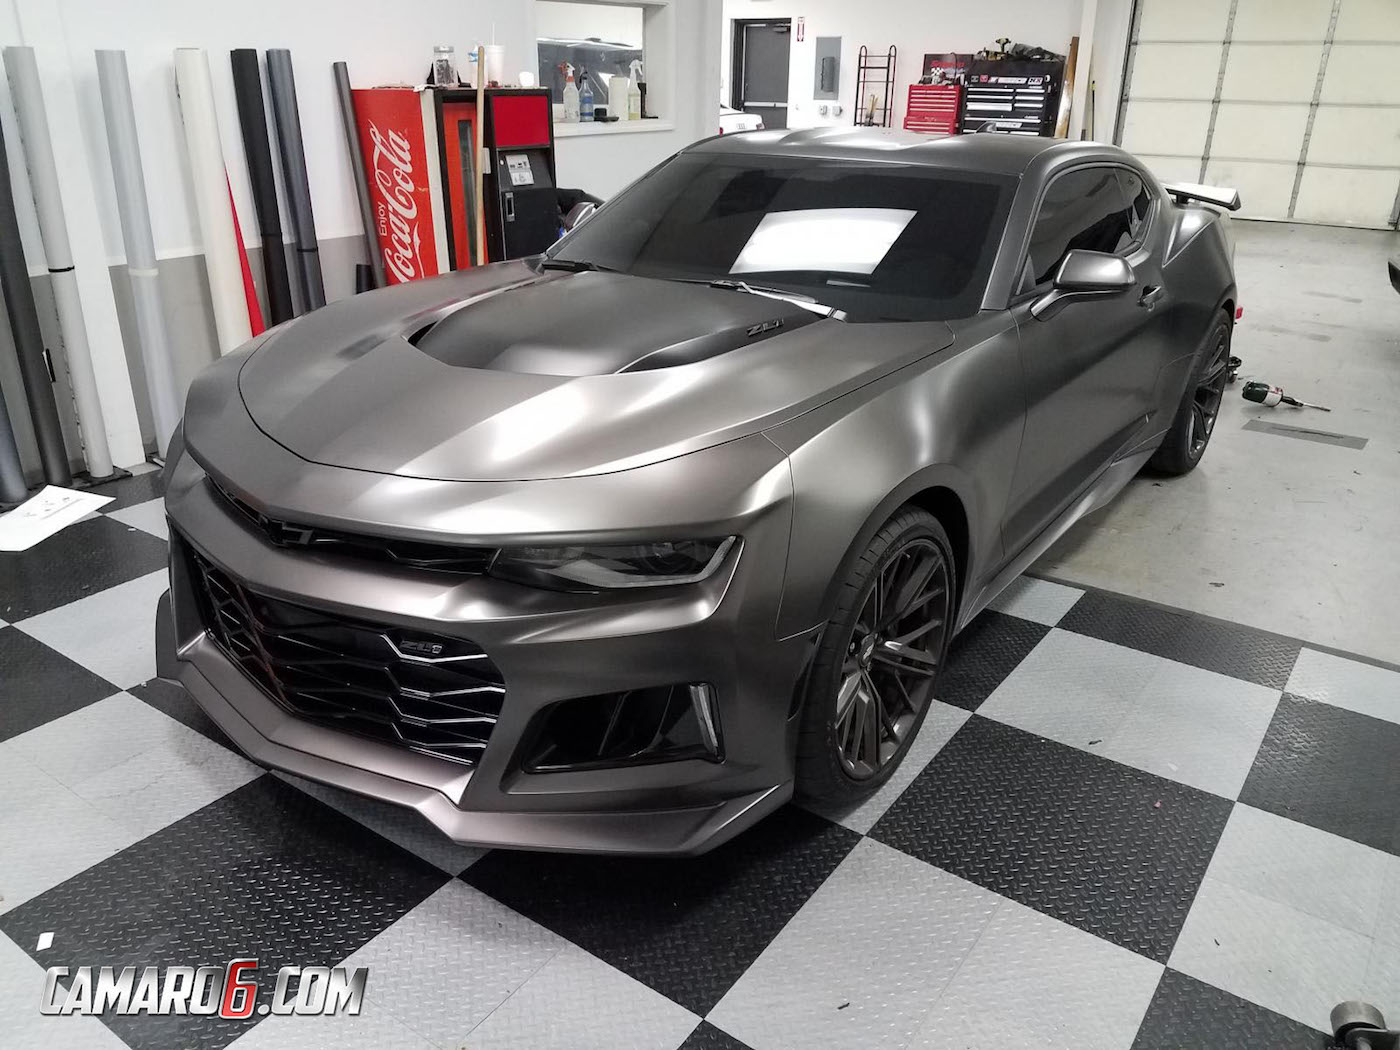 2017 Camaro Zl1 Gets Satin Nero Wrap Extreme Window Tint